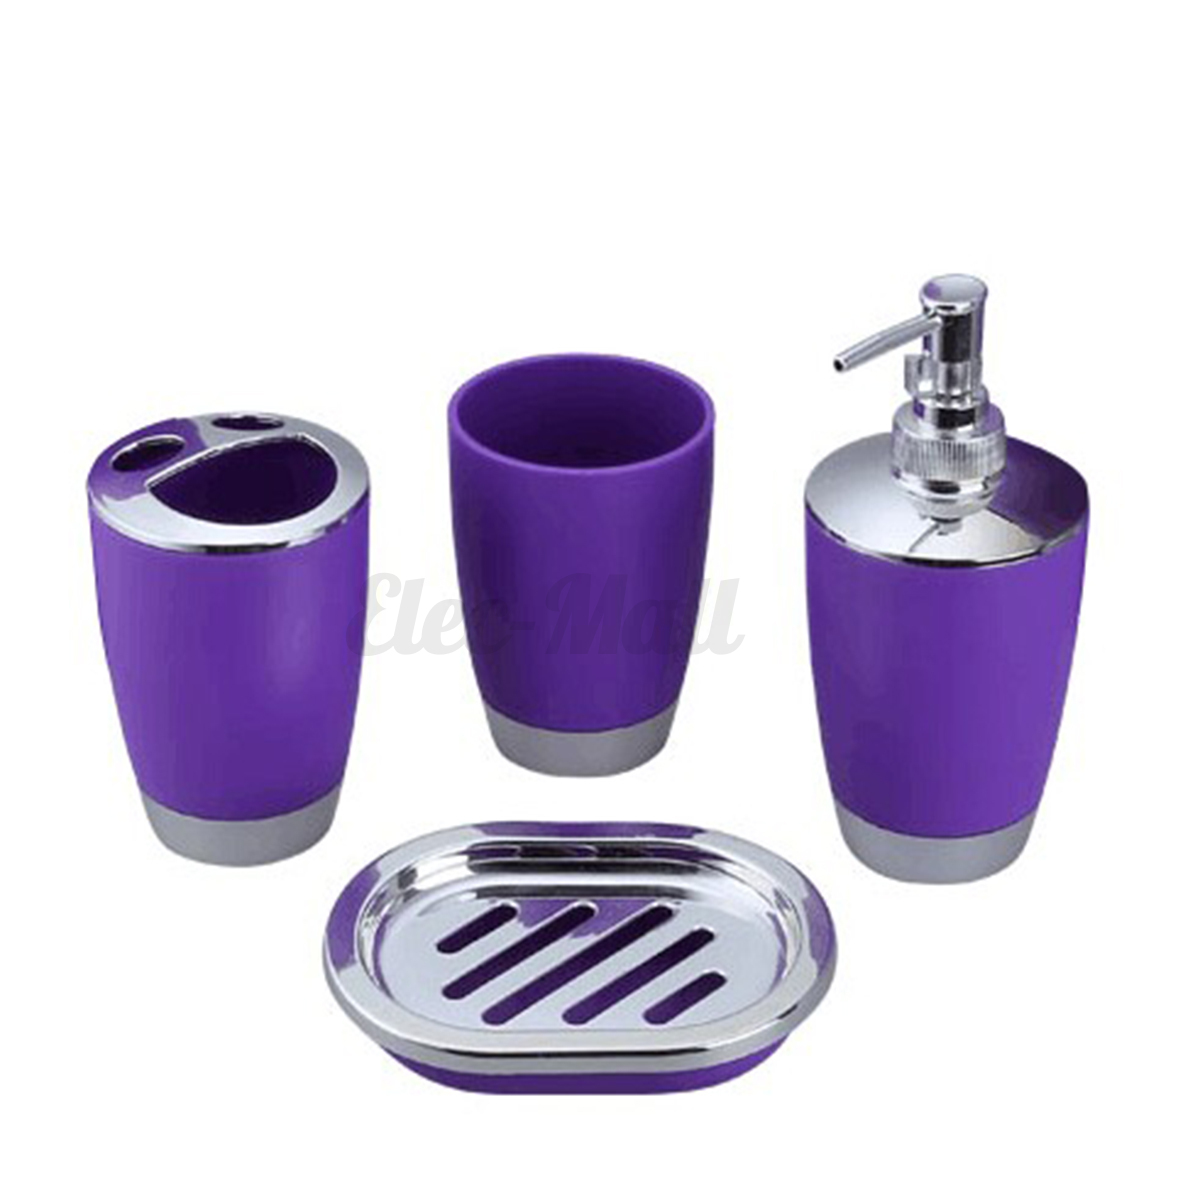 4pcs set plastic bathroom suit bath accessories cup for C bhogilal bathroom accessories